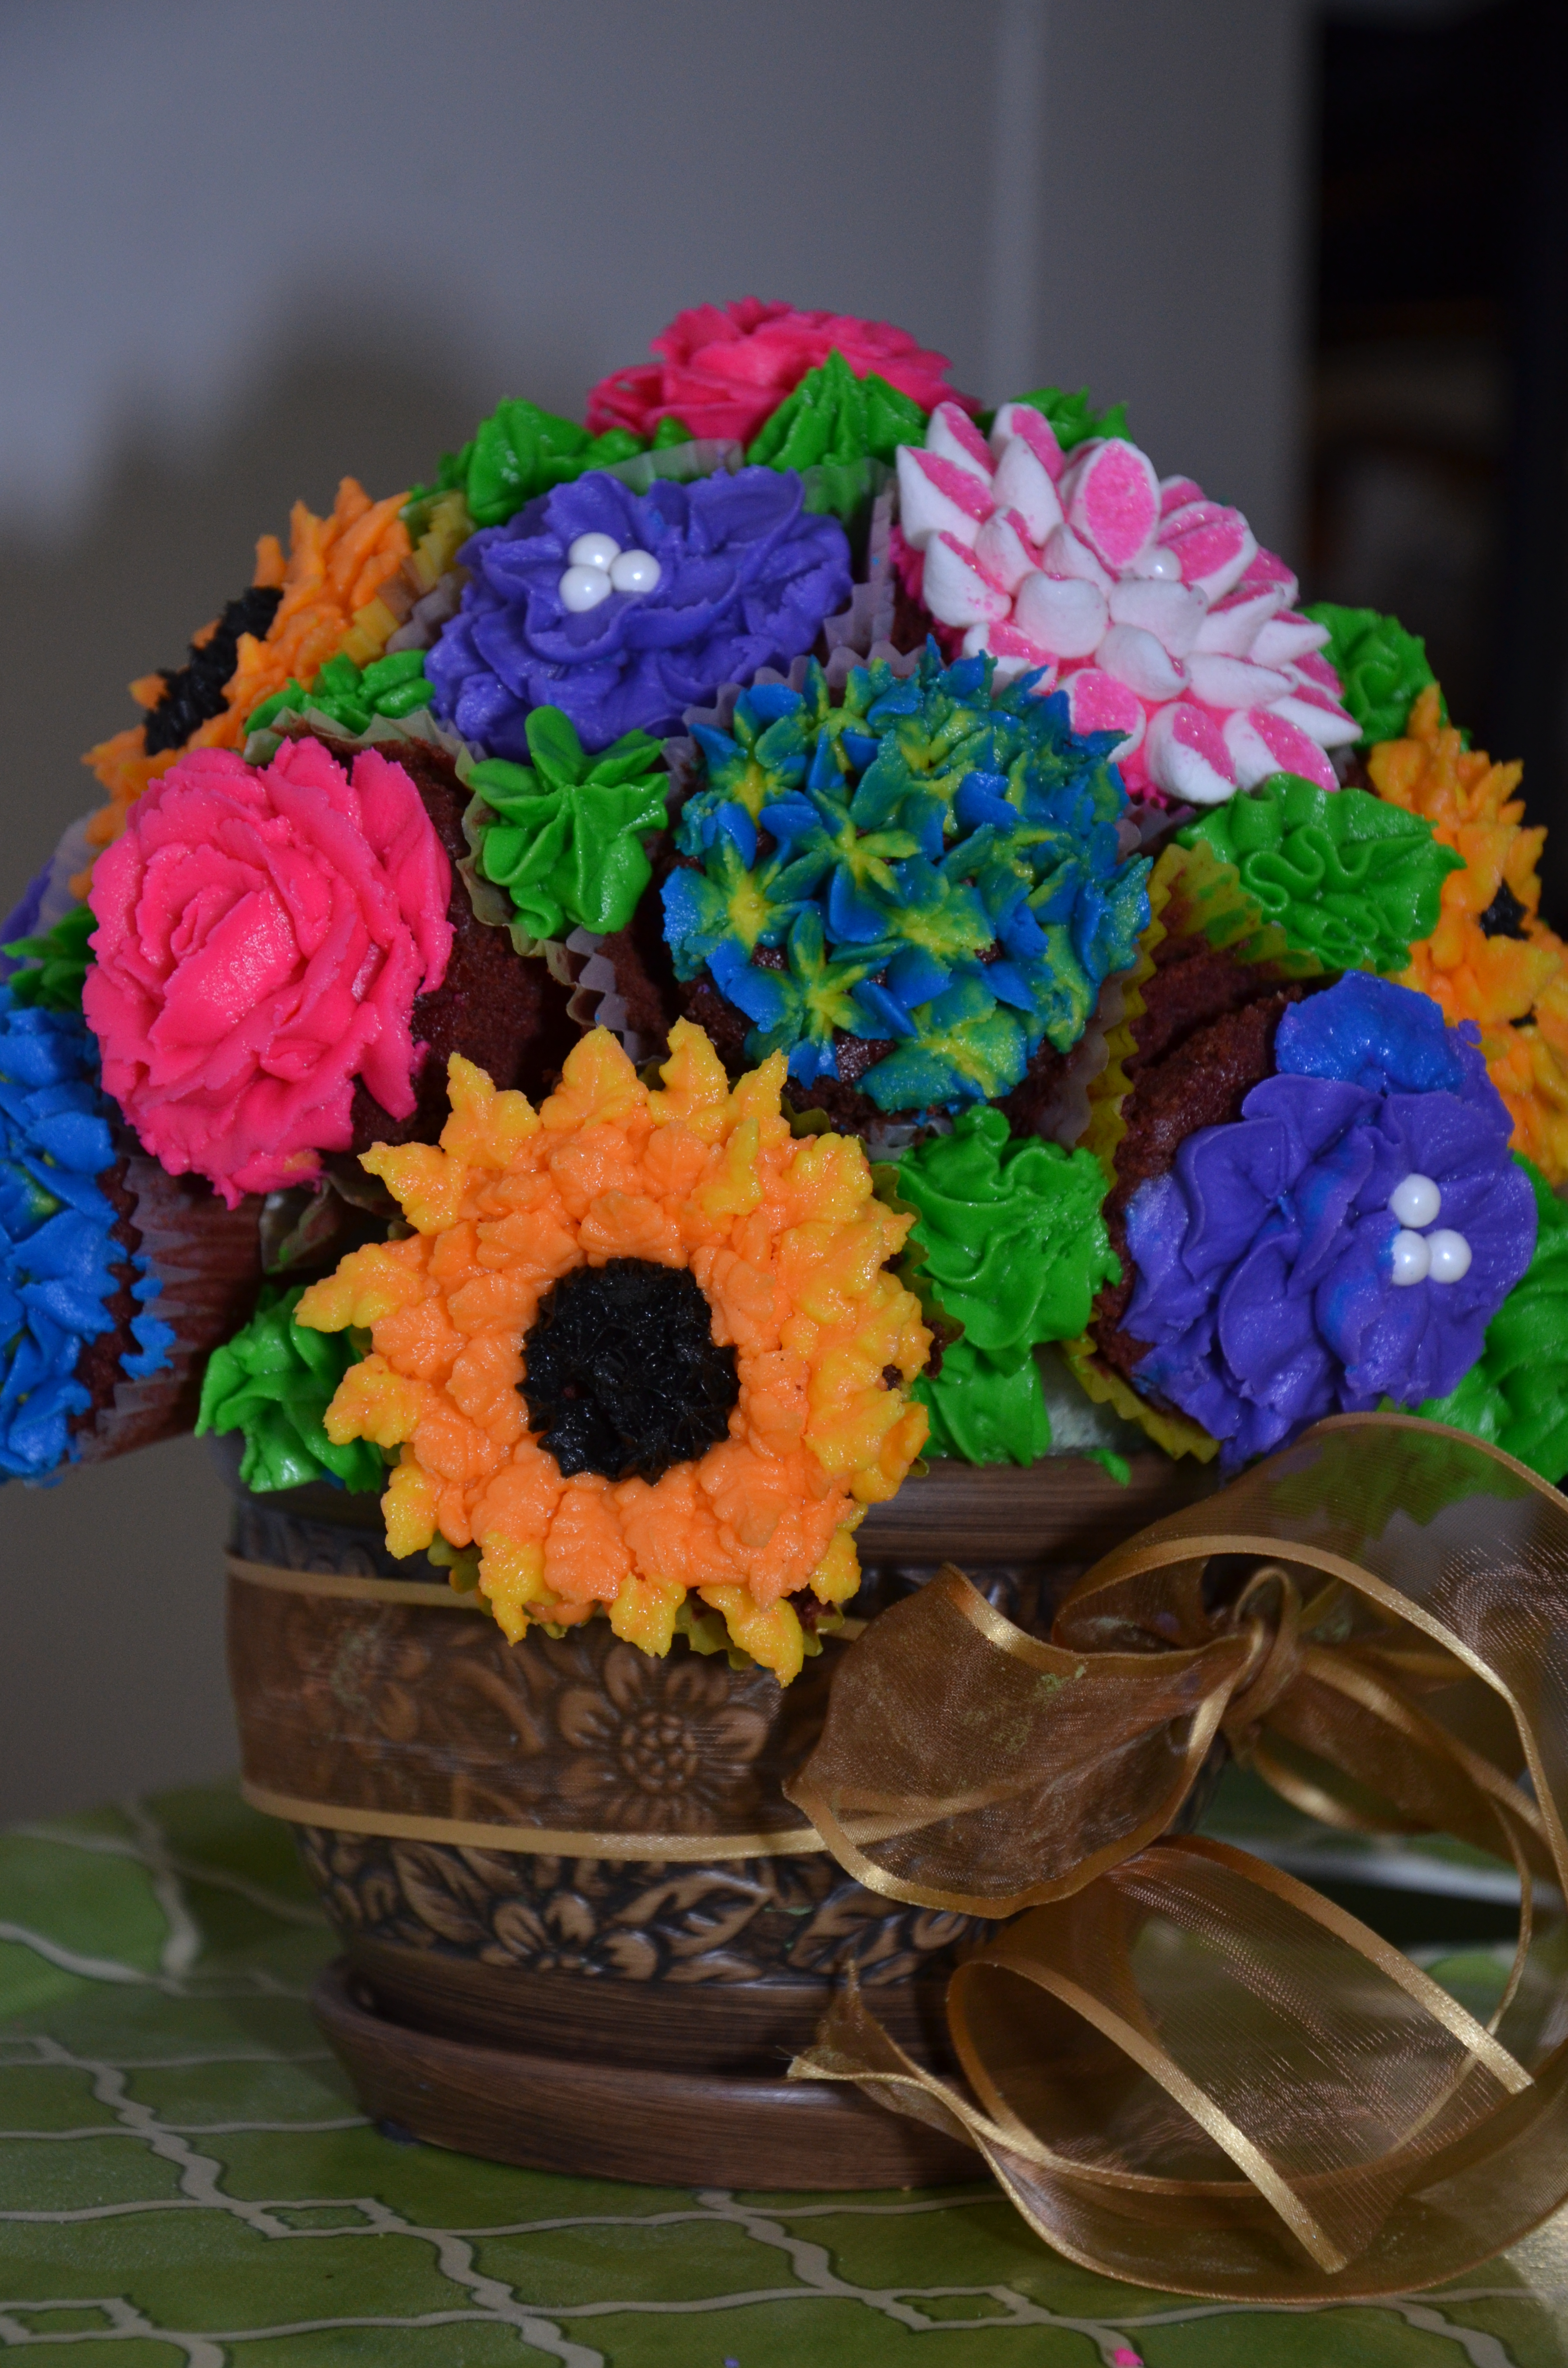 Gluten free cupcake bouquets by grace cakes dsc2020 izmirmasajfo Image collections